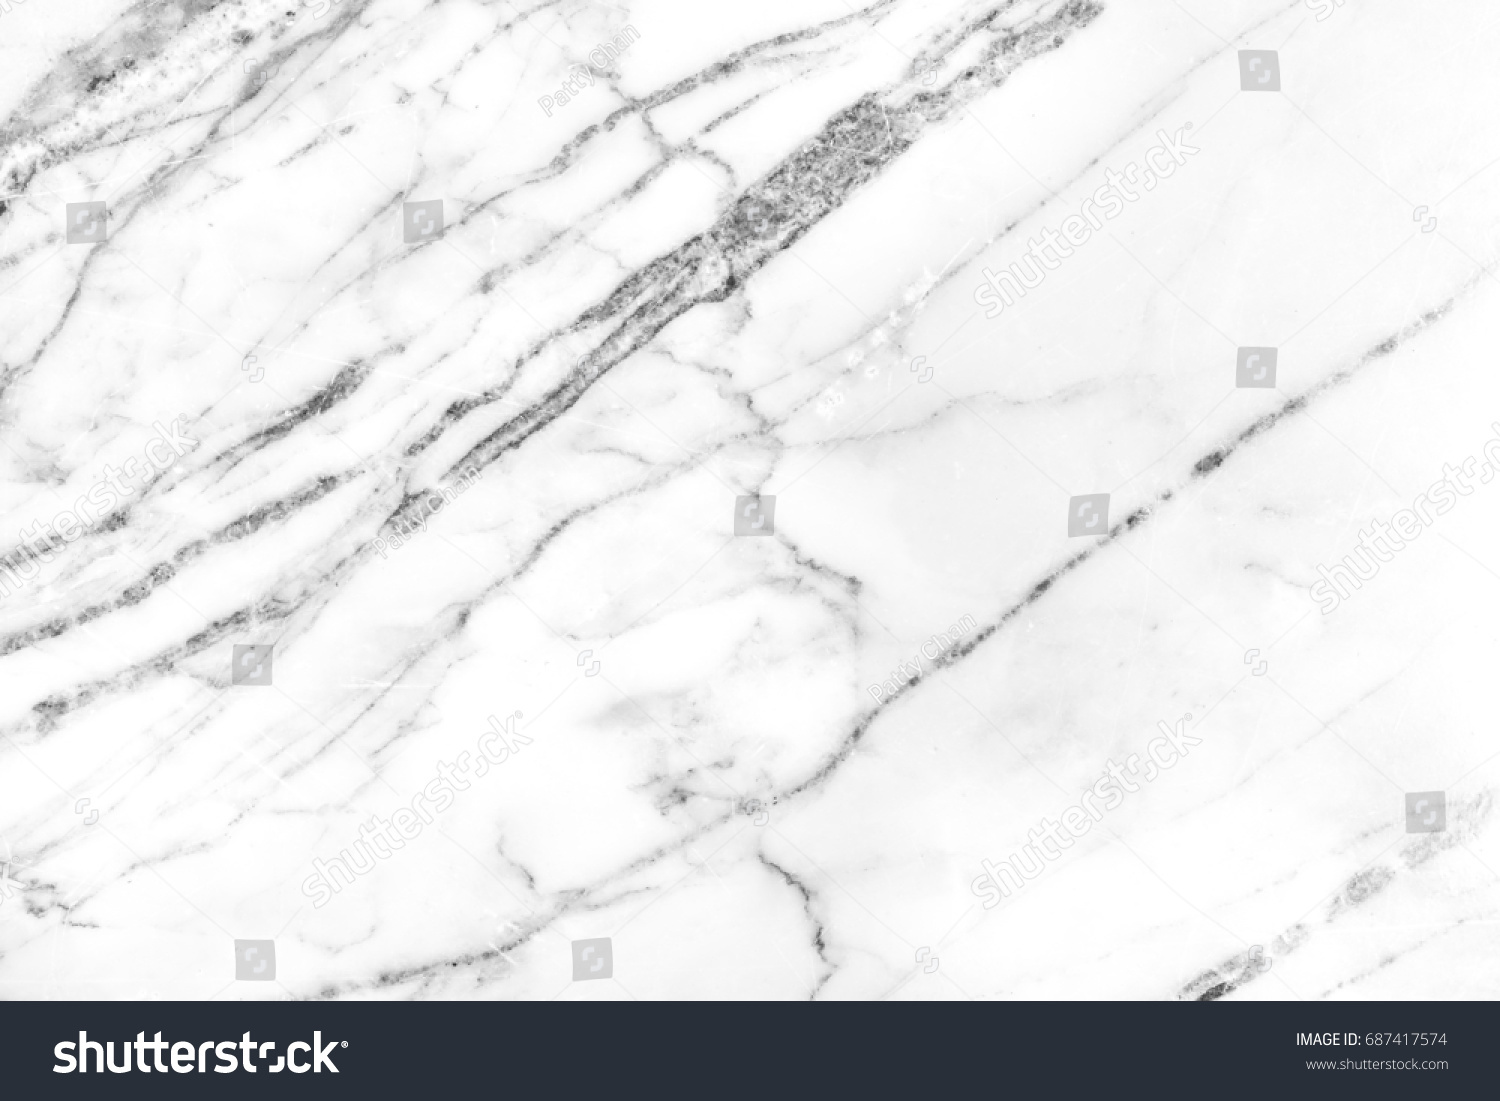 Fantastic Wallpaper High Resolution Marble - stock-photo-natural-white-marble-texture-for-skin-tile-wallpaper-luxurious-background-stone-ceramic-art-wall-687417574  2018_941989.jpg